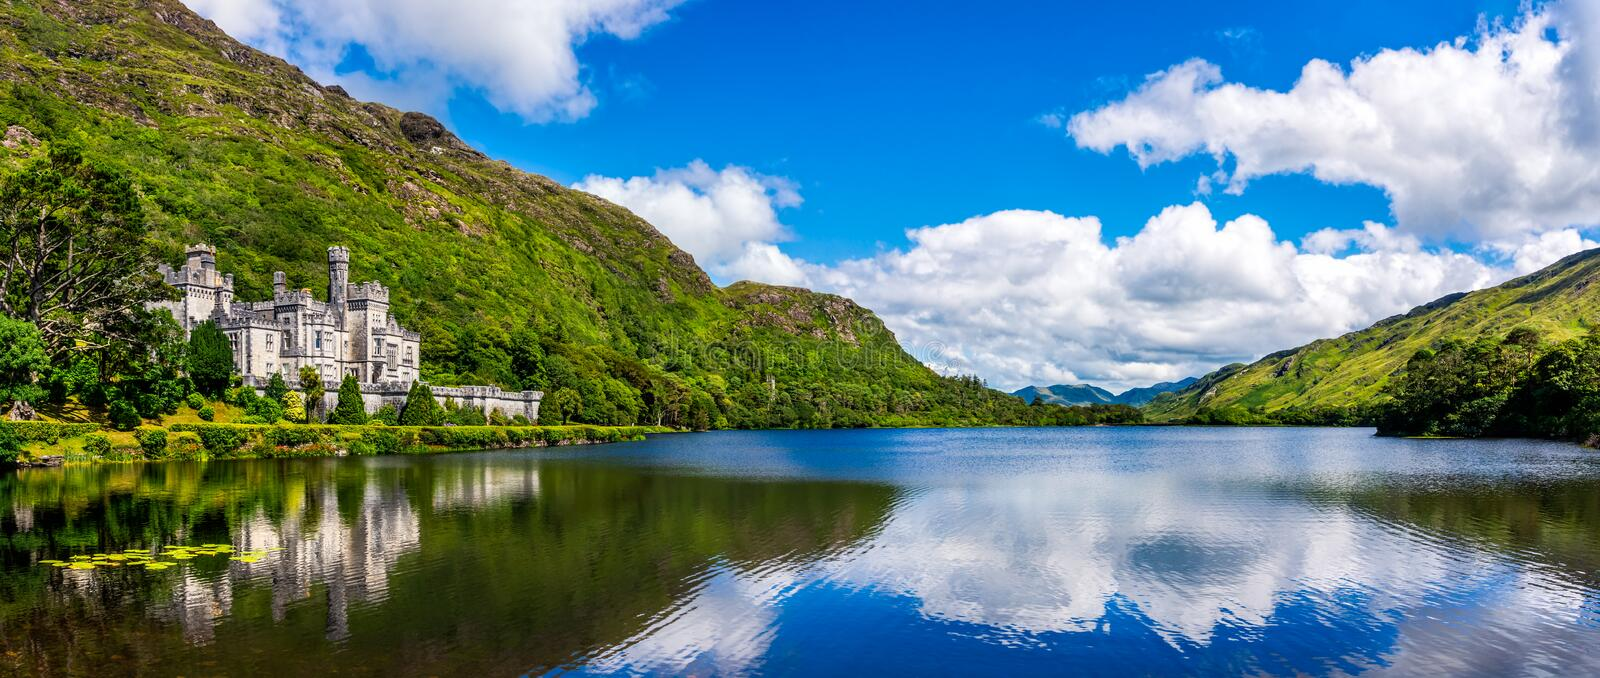 Kylemore Abbey, beautiful castle like abbey reflected in lake at the foot of a mountain. Ireland royalty free stock photo